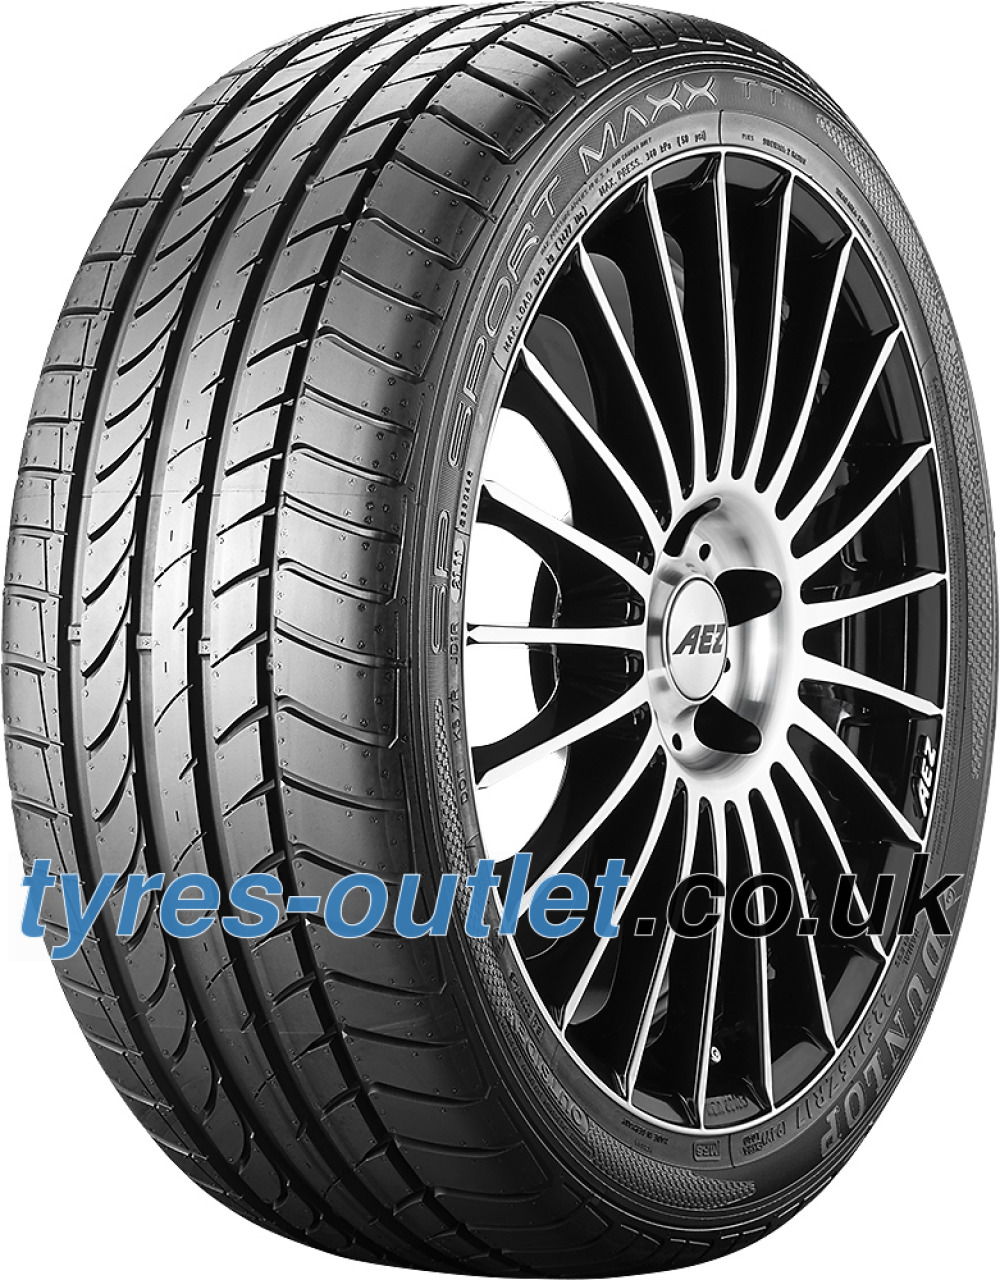 Dunlop SP Sport Maxx TT ROF ( 255/45 R17 98W runflat, with rim protection (MFS), * )